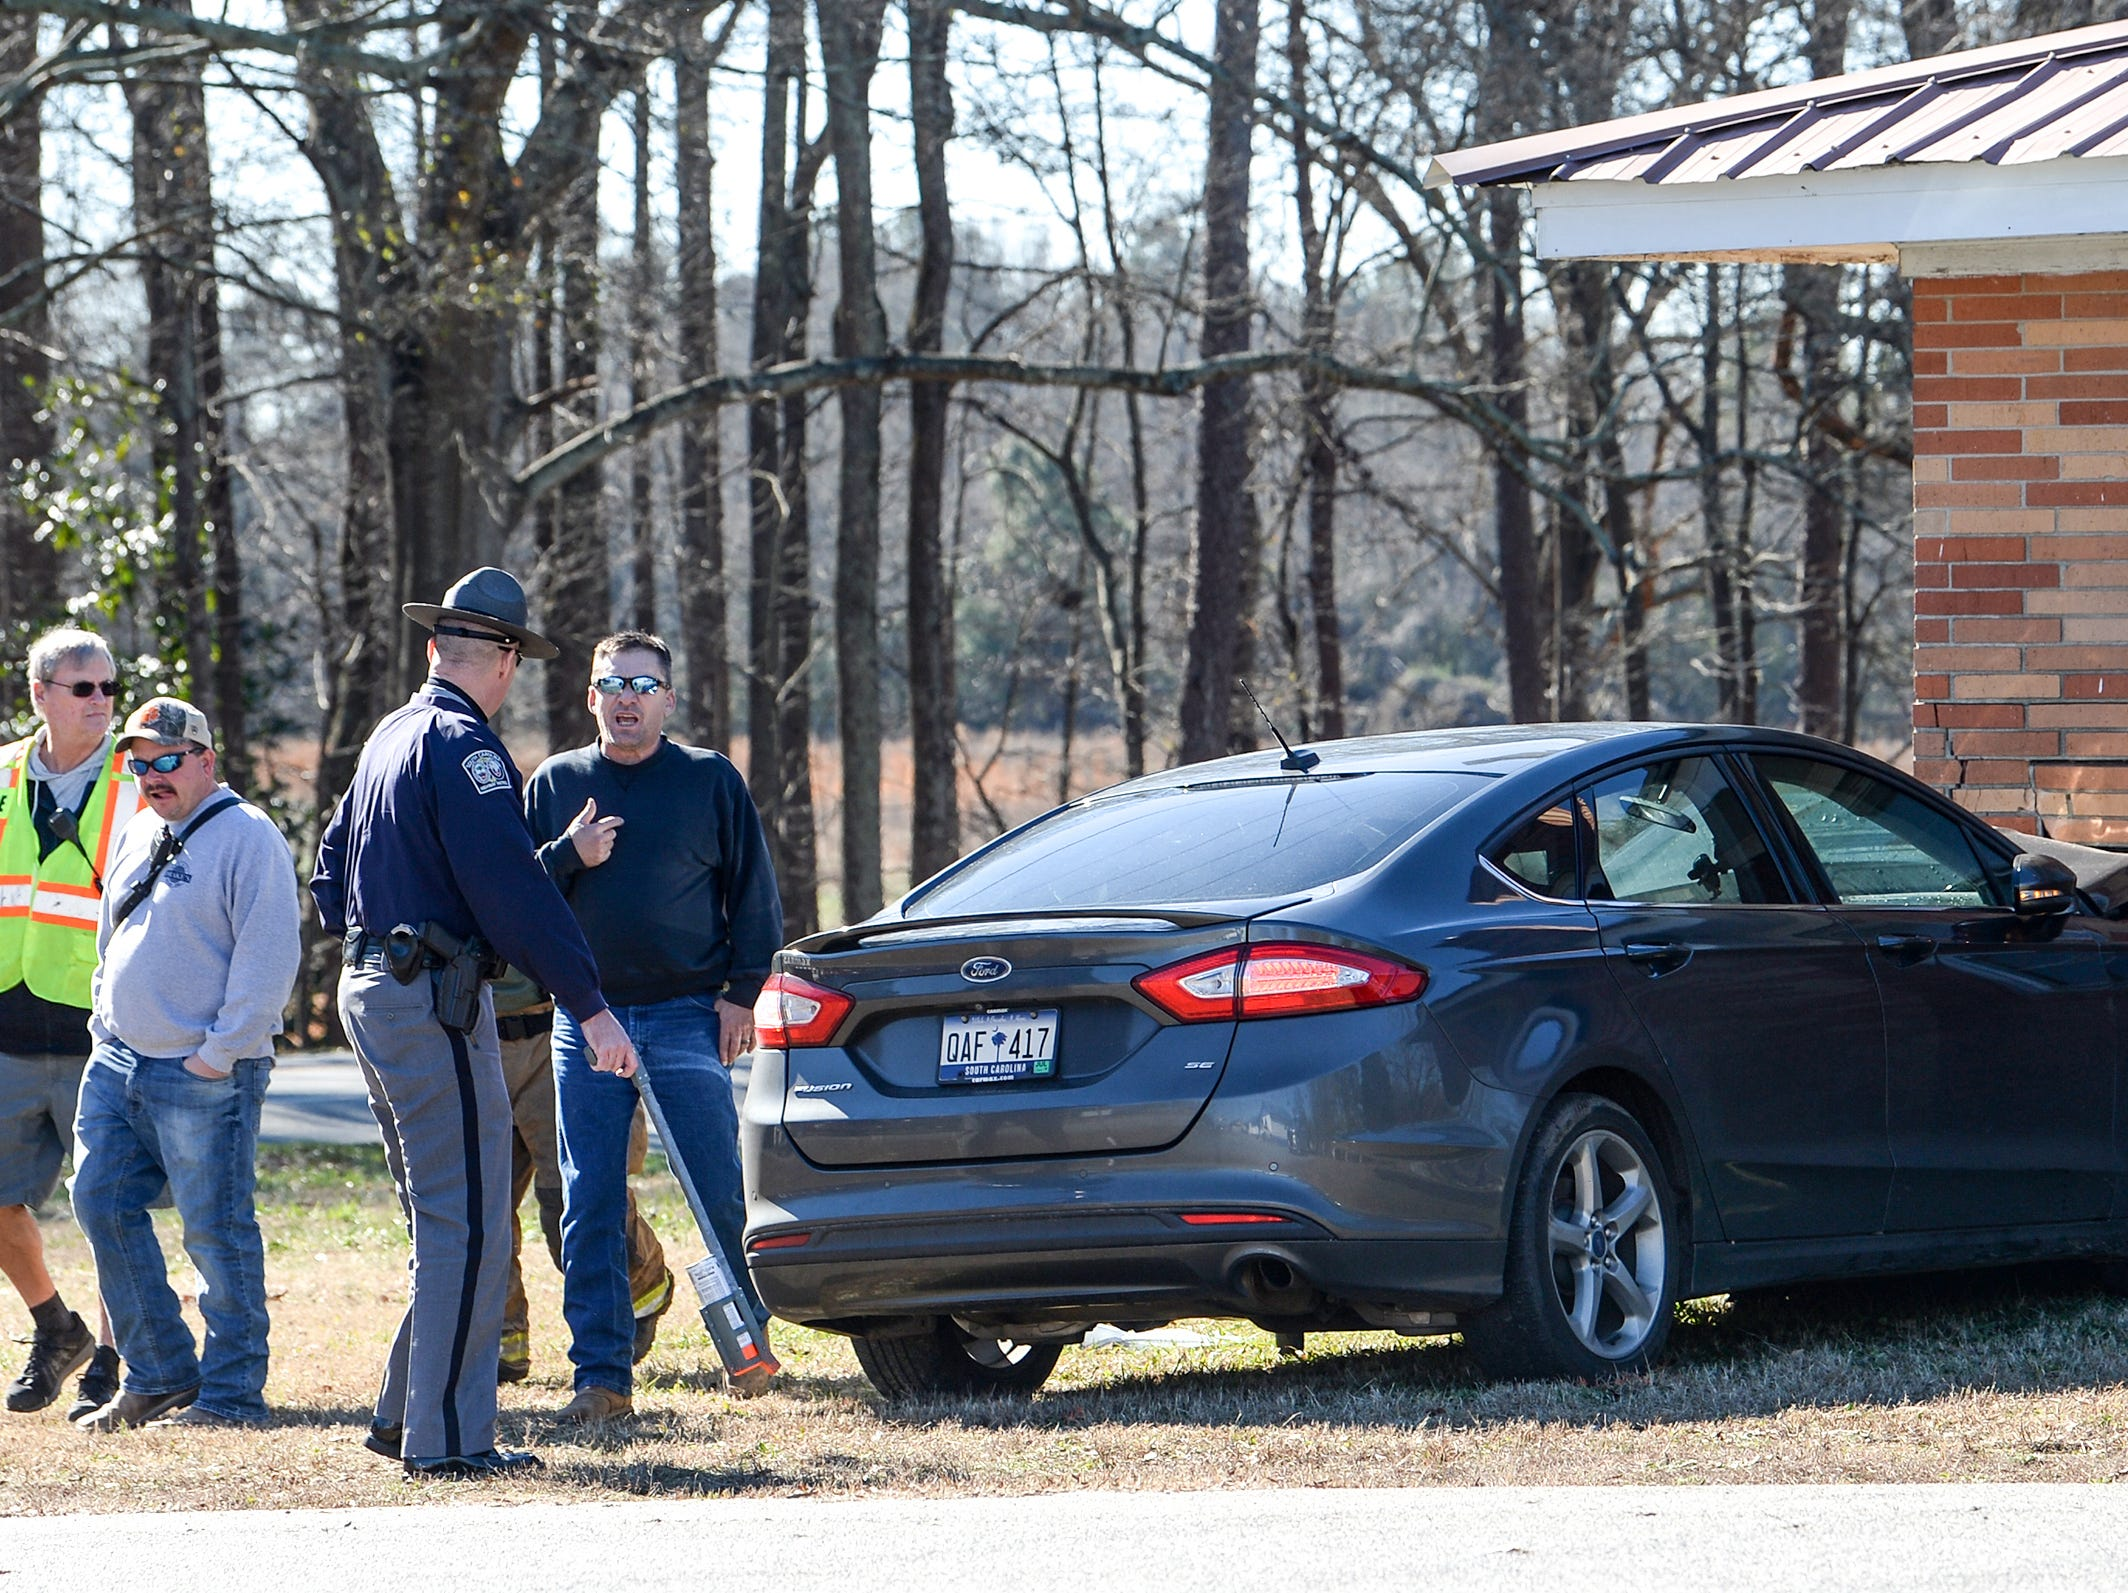 Whitefield station 22 firemen and State Troopers look at a black Ford Fusion up against the home on 1700 Anderson Parkway at Vernon Street in Williamston Wednesday. Firemen said the man driving appeared to drive through the American Legion Post 121 parking lot before stopping a three-foot square on the corner of the house before being taken to Greenville for medical care.